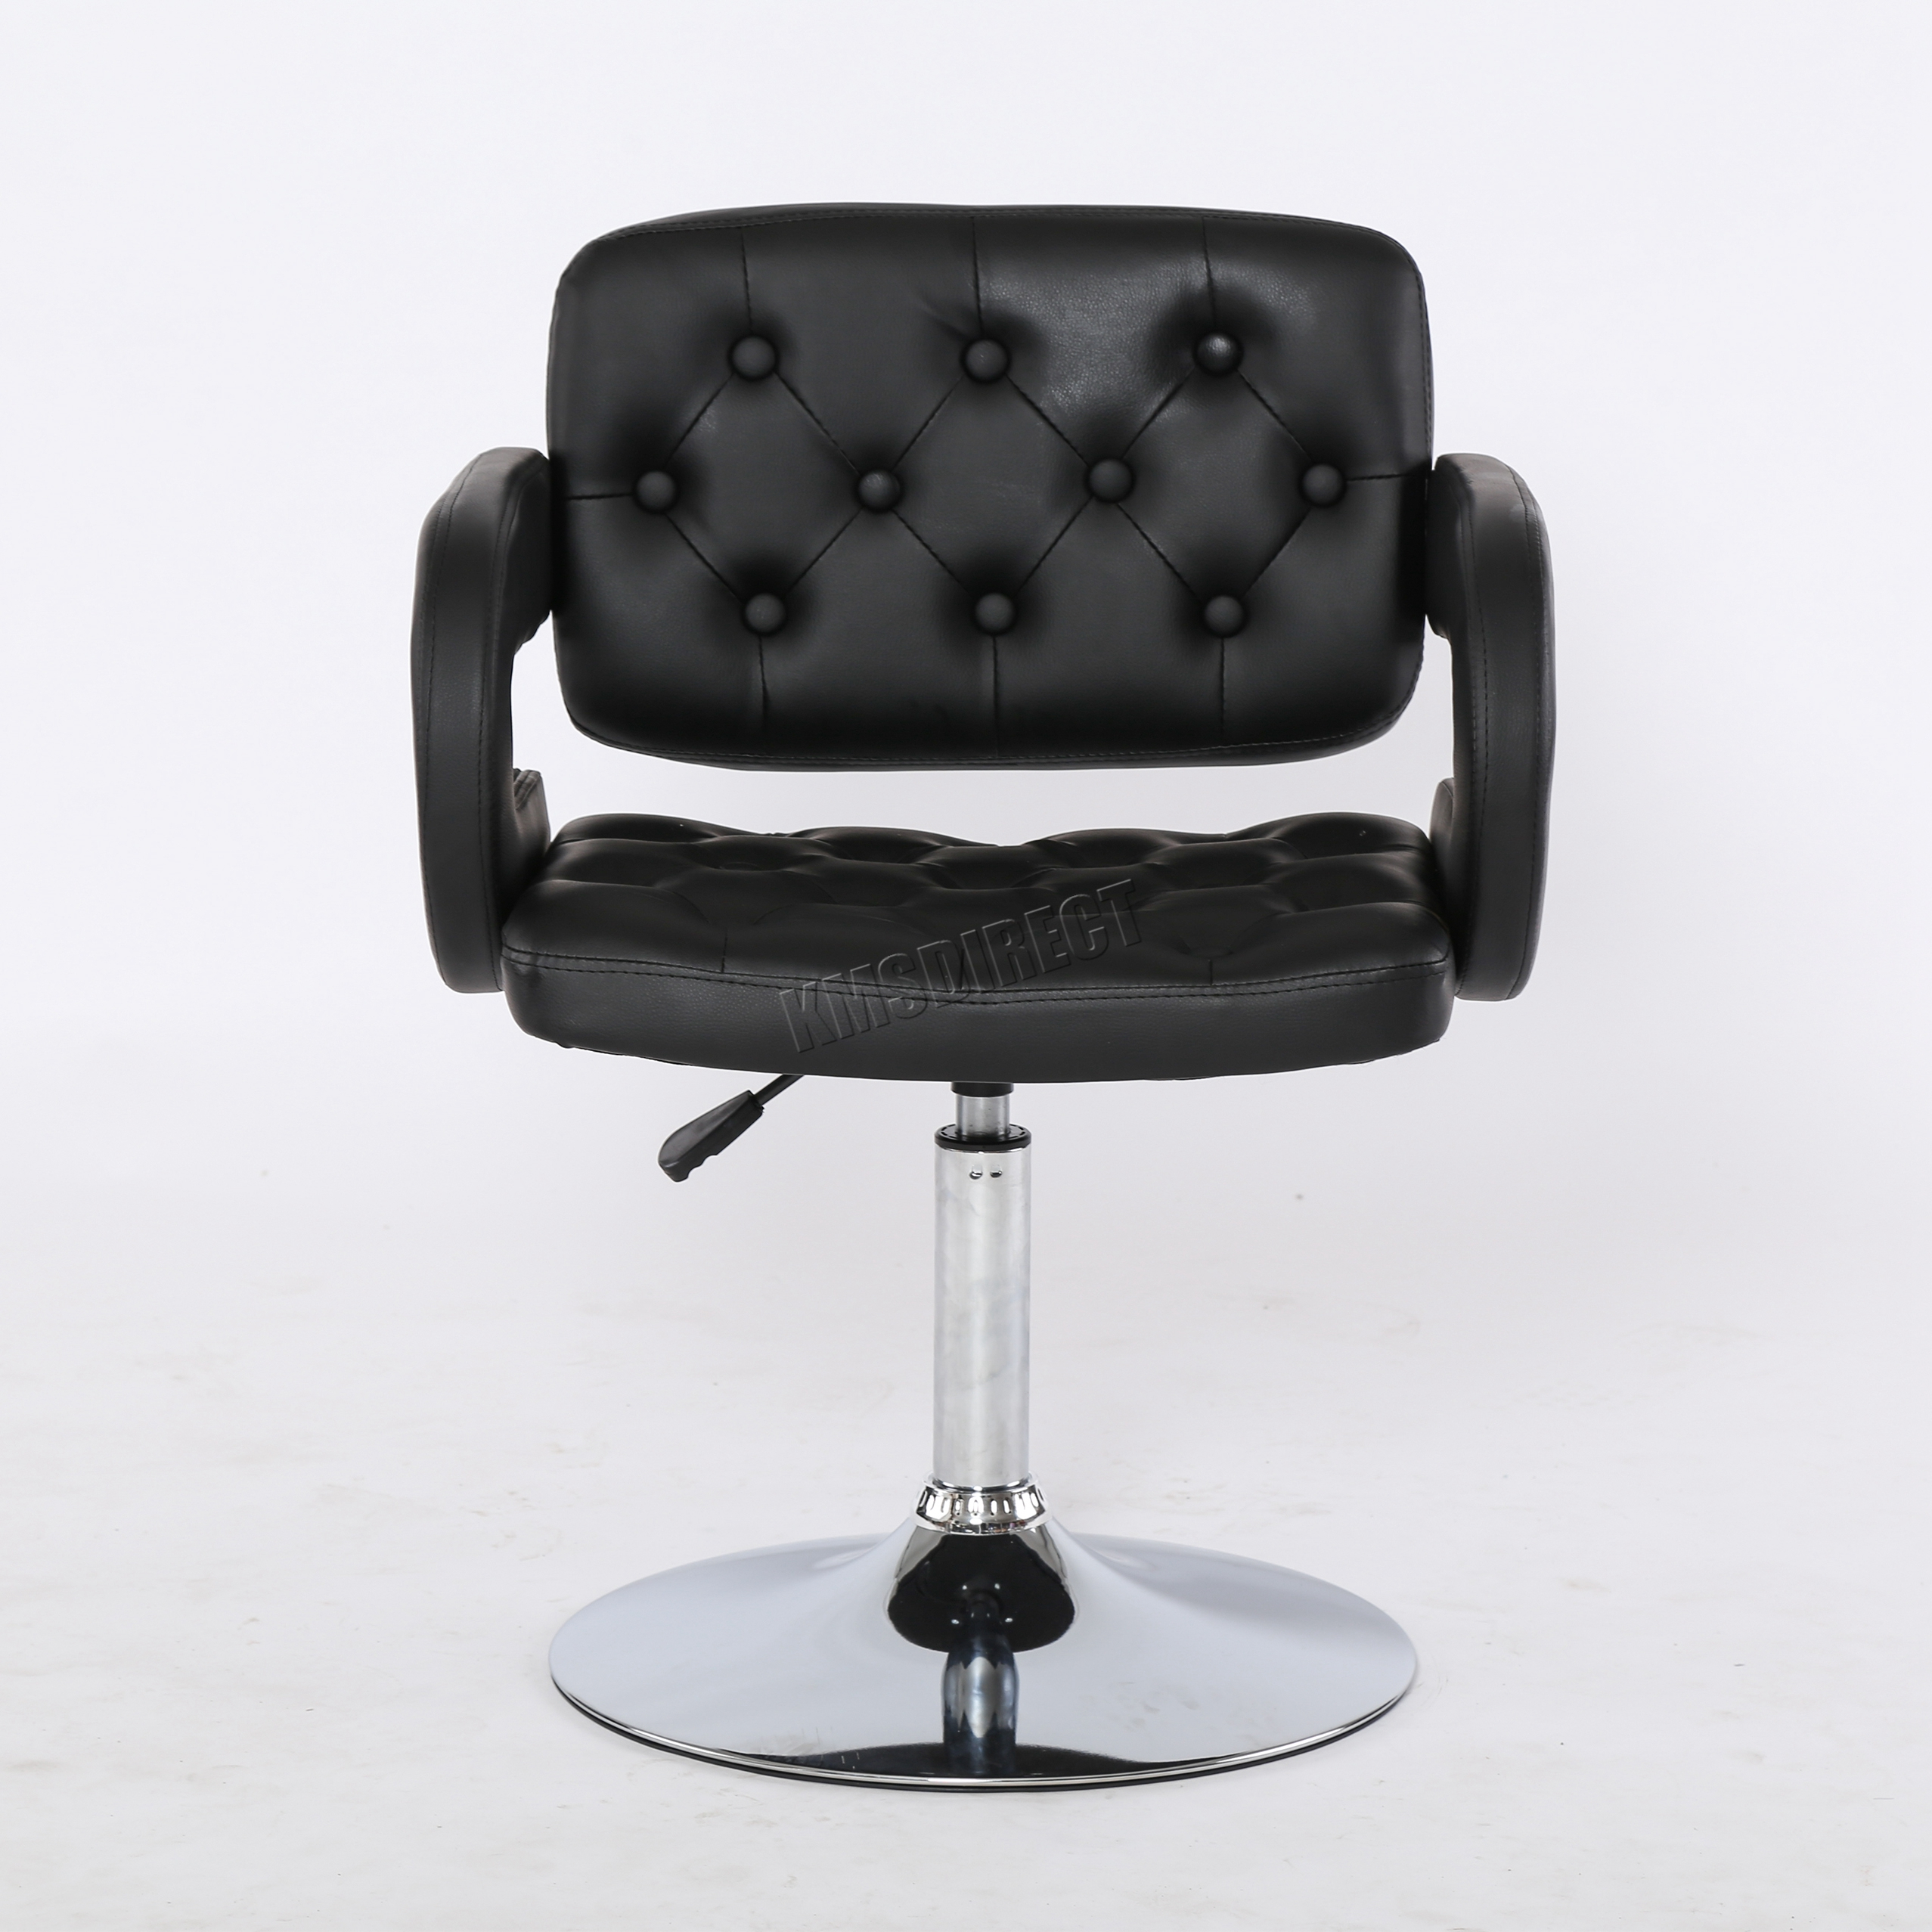 Foxhunter beauty salon chair barber hairdressing hair cut for Hairdressing chairs